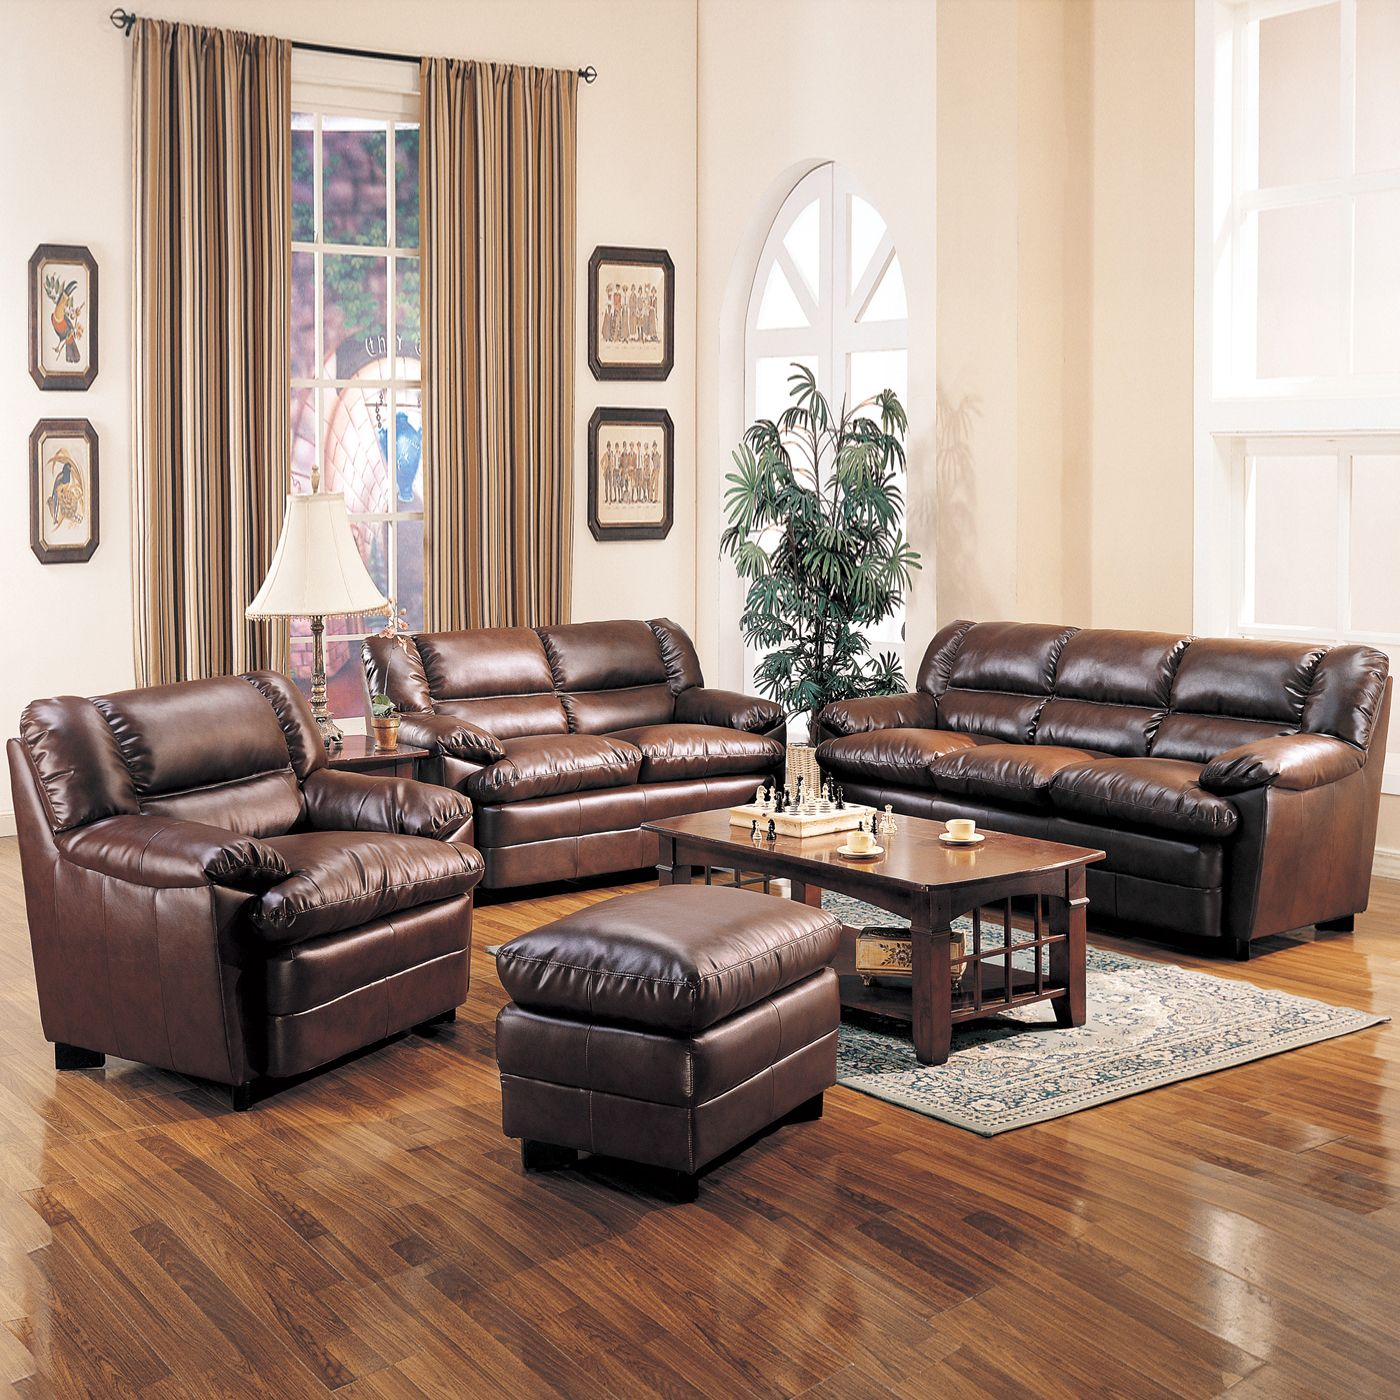 Nice Cream Living Room Sets: Vintage Living Room Set Up With Dark Brown Leather  Sofa And